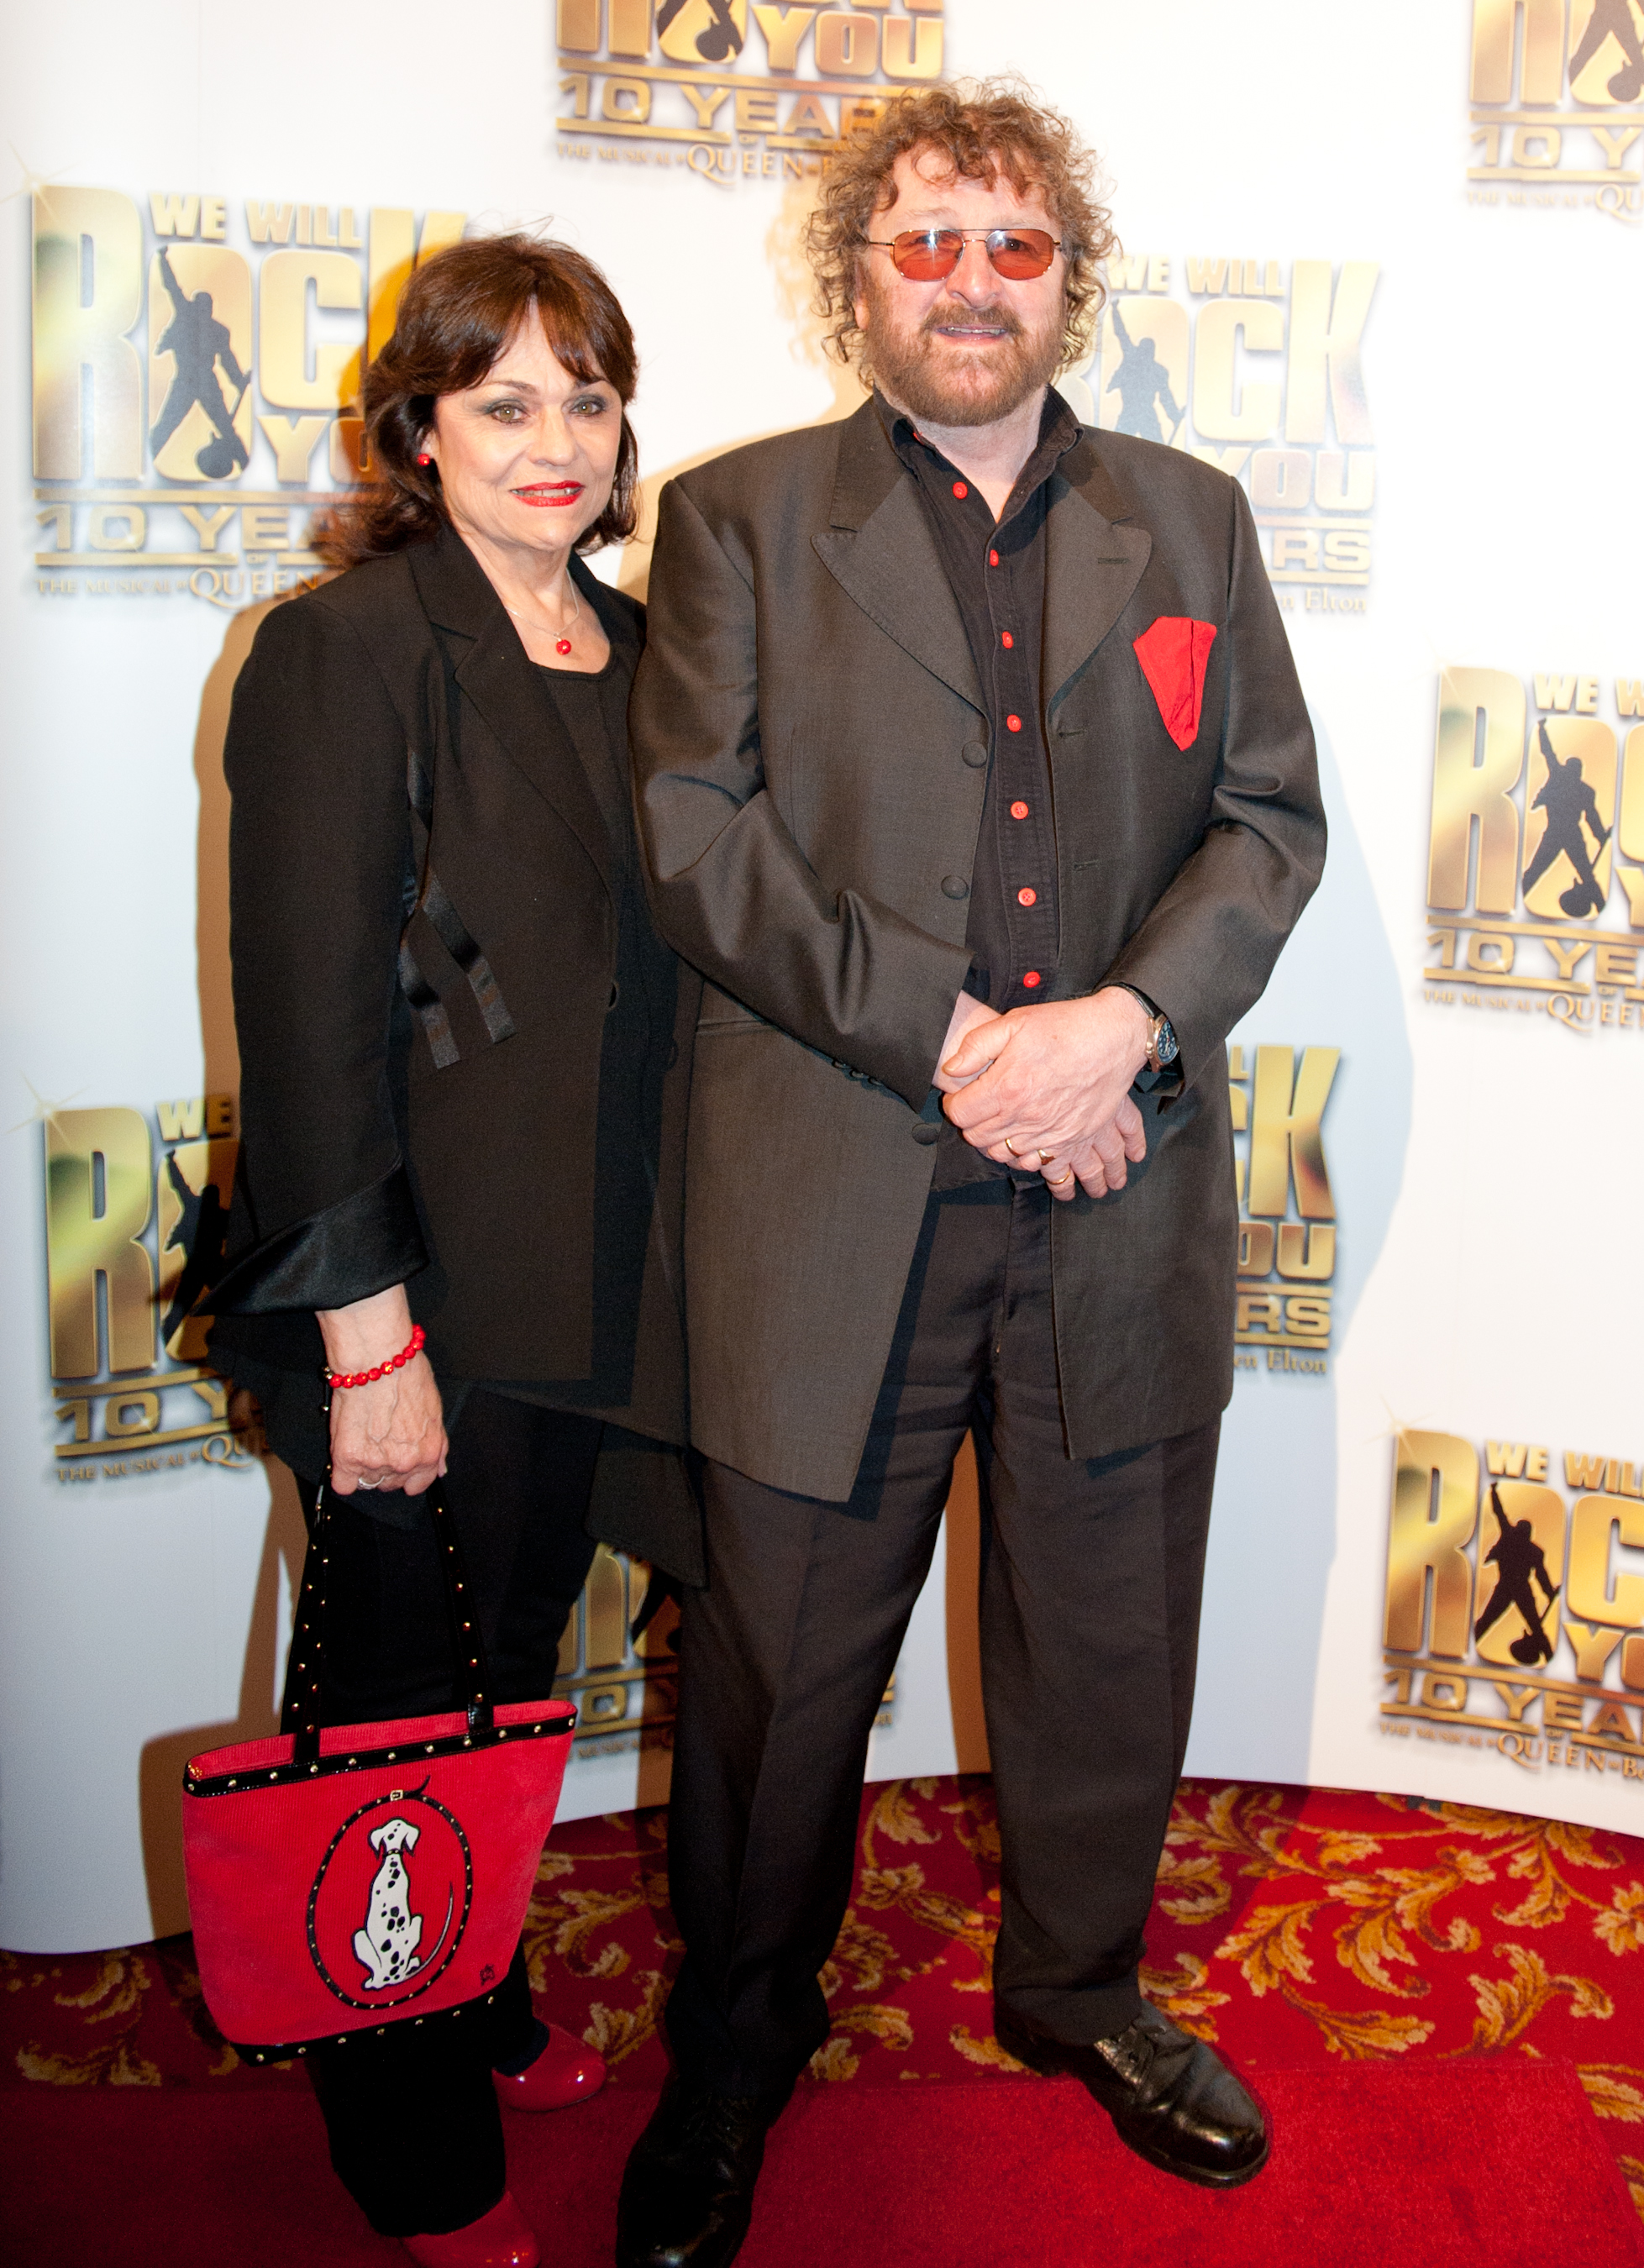 Chas Hodges attends the We Will Rock You 10 Year Anniversary Celebration performance at The Dominion Theatre on May 14, 2012 in London, England.